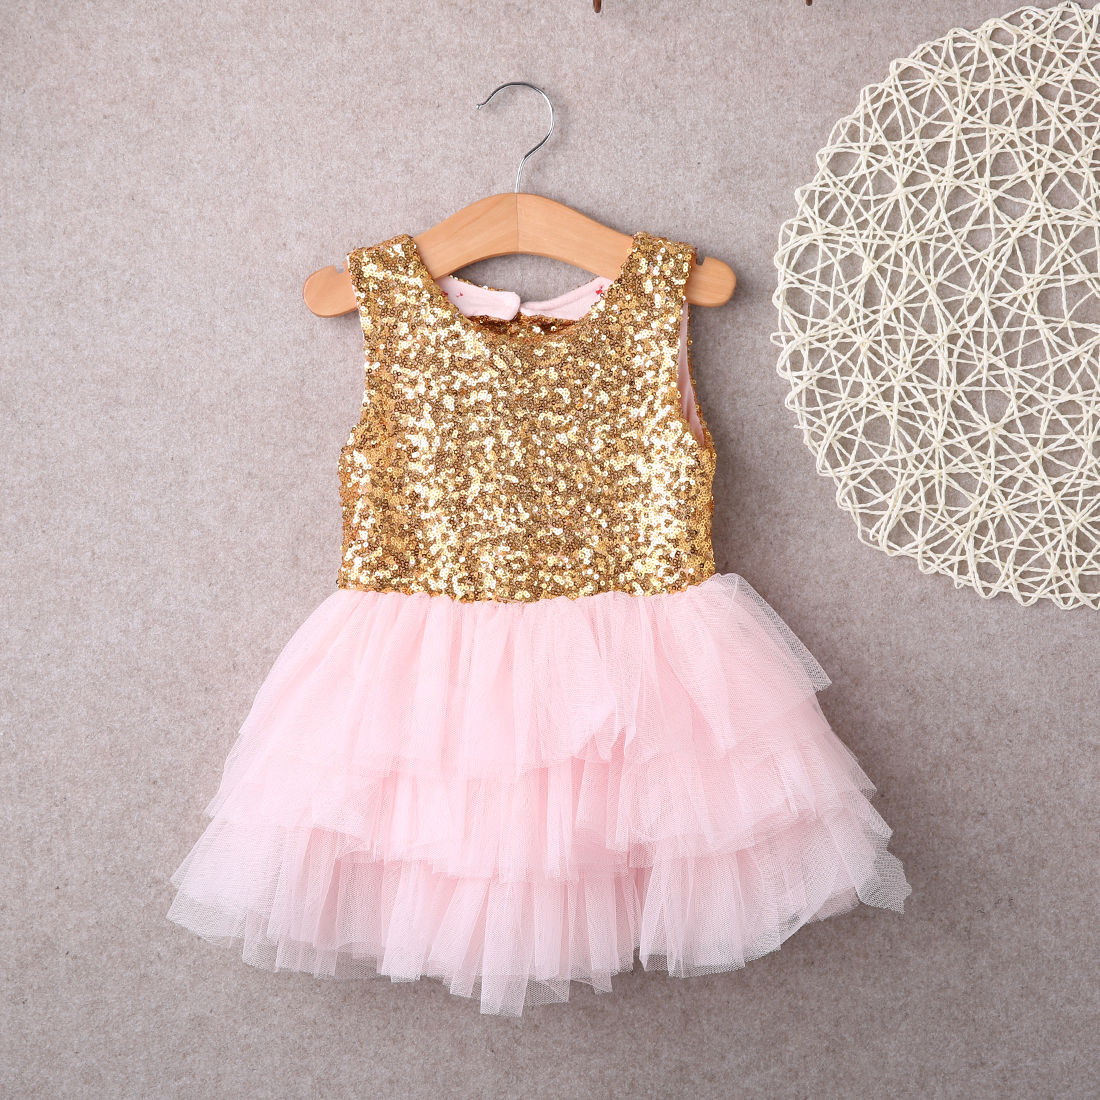 Dresses 2016 New Baby Children Girl Sequins Backless Bow Gold Lace Tulle Ruffled Party Mini Ball Gown Formal Dress Fashion Girl 2016 spring new pattern korean children s garment girl baby lace back will bow dress girl jacket